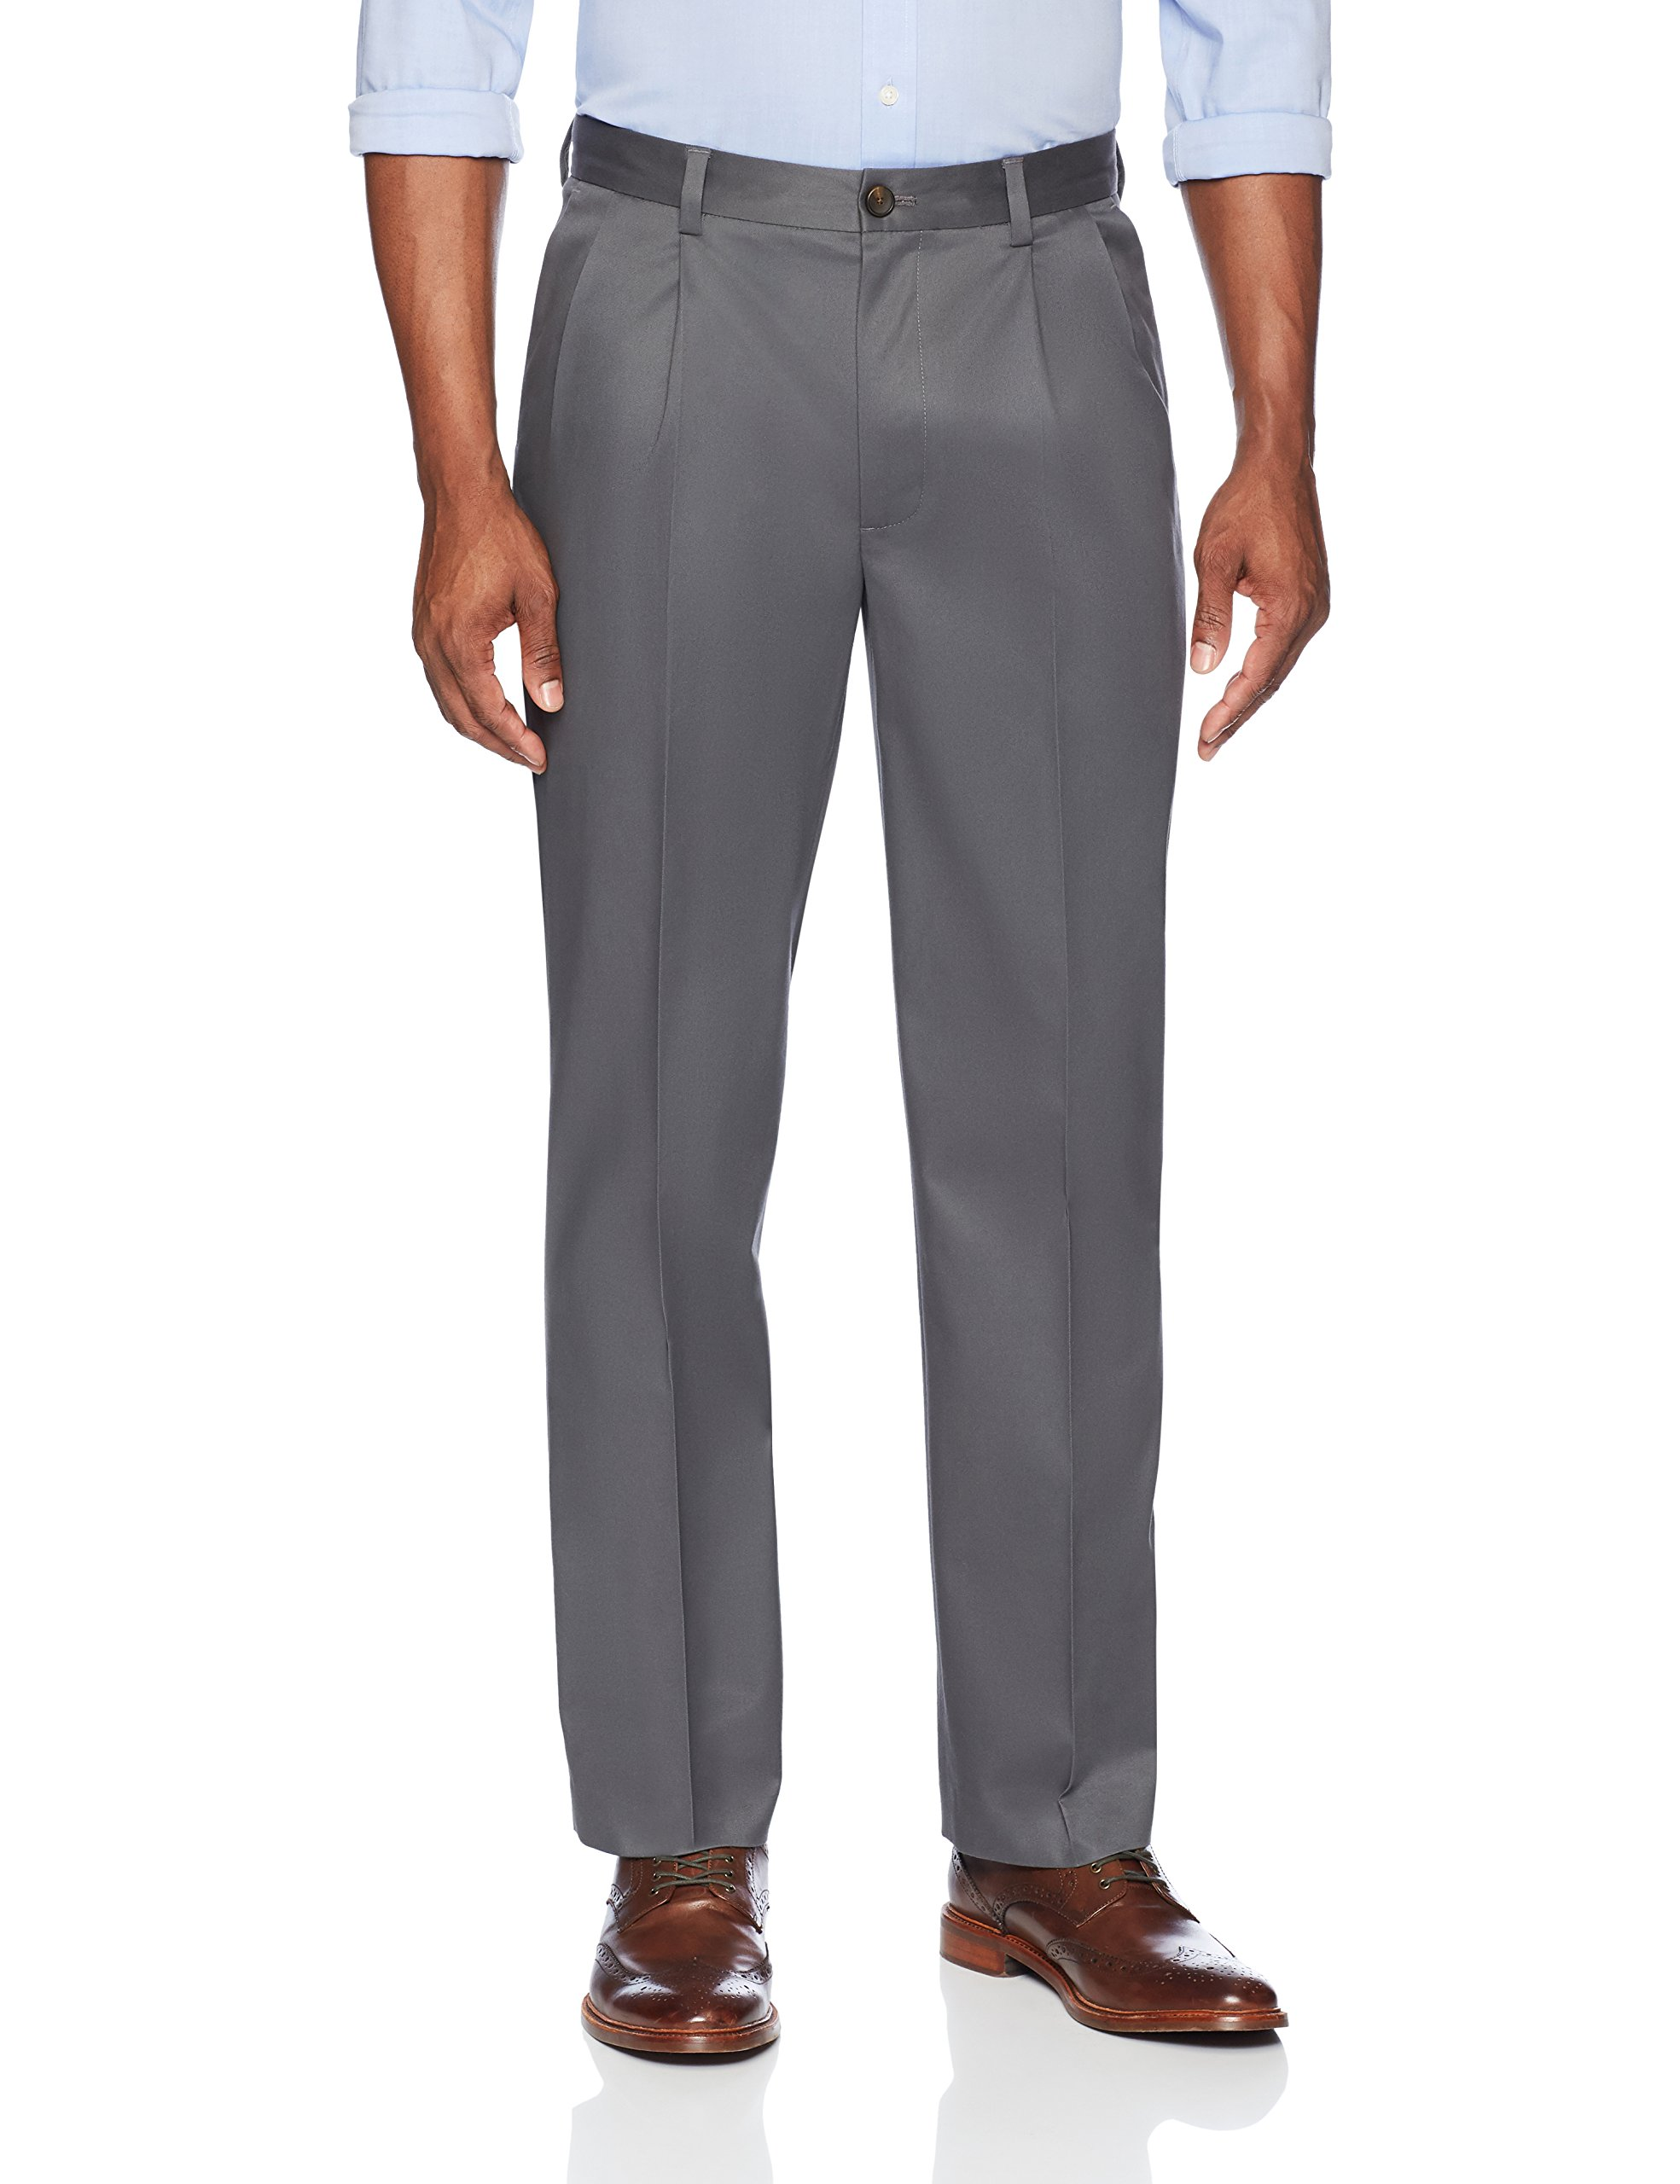 Buttoned Down Men's Relaxed Fit Pleated Stretch Non-Iron Dress Chino Pant, Dark Grey, 34W x 32L